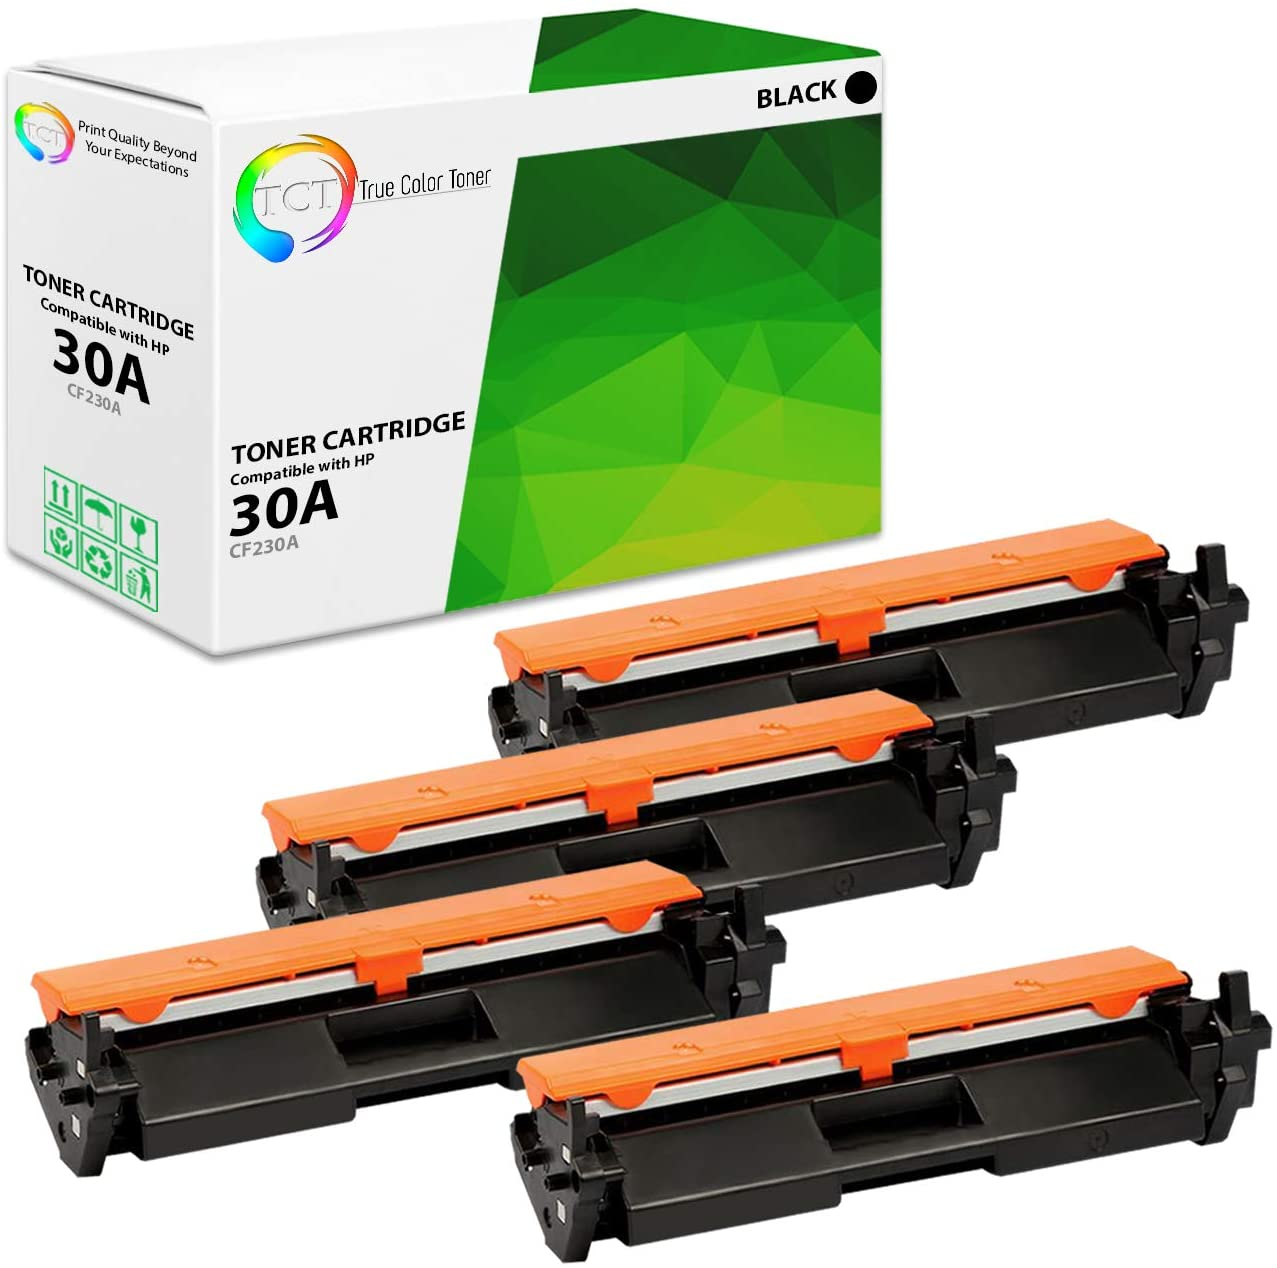 TCT Premium Compatible Toner Cartridge Replacement for HP 30A CF230A Black Works with HP Laserjet Pro M203dw M203dn M203d, MFP M277sdn M227fdw M277fdn Printers (1,600 Pages) - 4 Pack